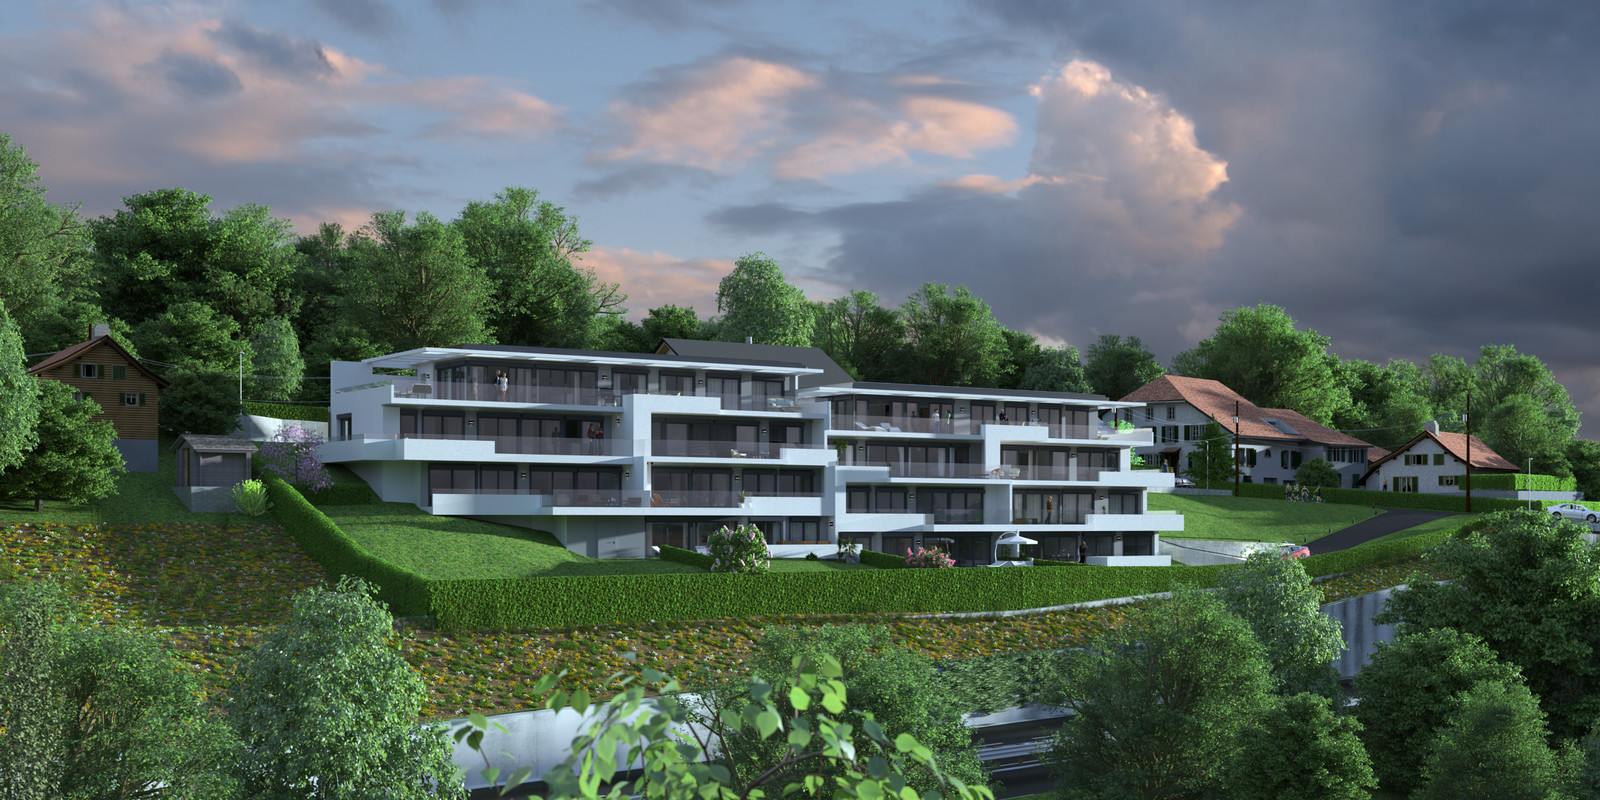 SketchUp 2018 + Thea Render  Project Lutry Thea Full work file 05 No Fog 2018 2-Scene 128 2pt 252 hdr  HDR by HDRI-SKIES found here: http://hdri-skies.com/shop/hdri-sky-252/